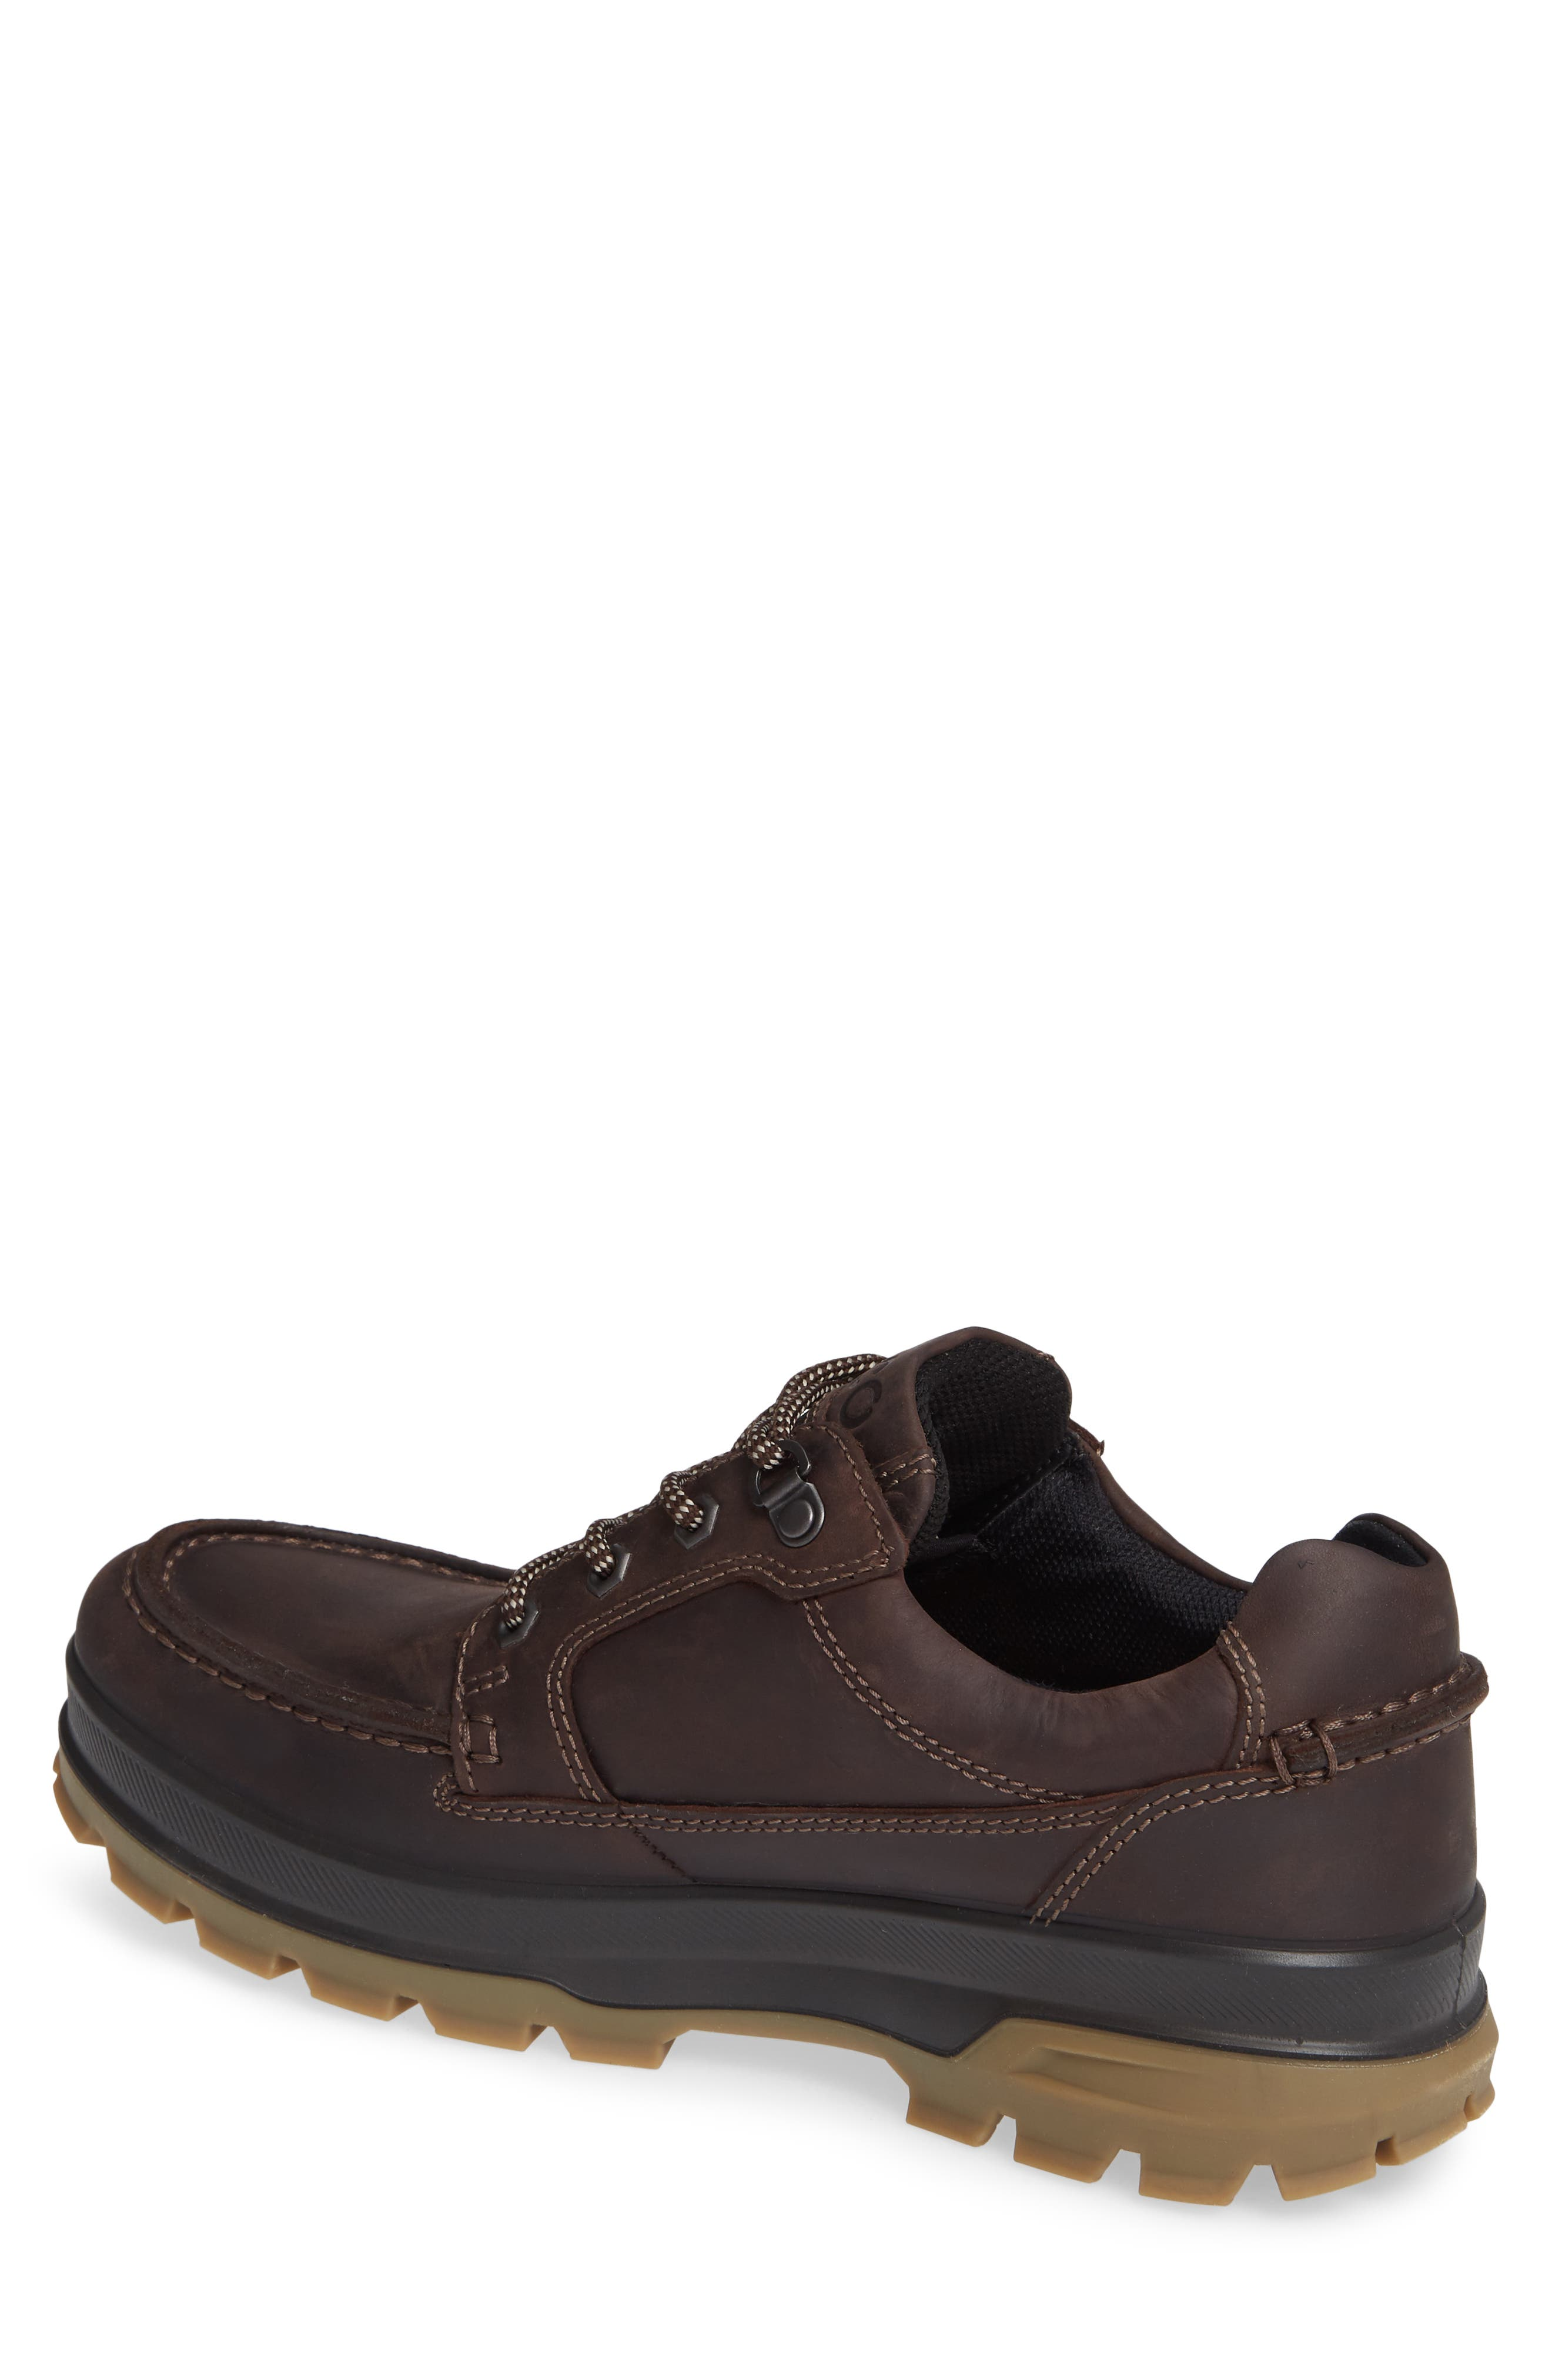 Rugged Track Low Gore-Tex<sup>®</sup> Oxford,                             Alternate thumbnail 2, color,                             MOCHA LEATHER